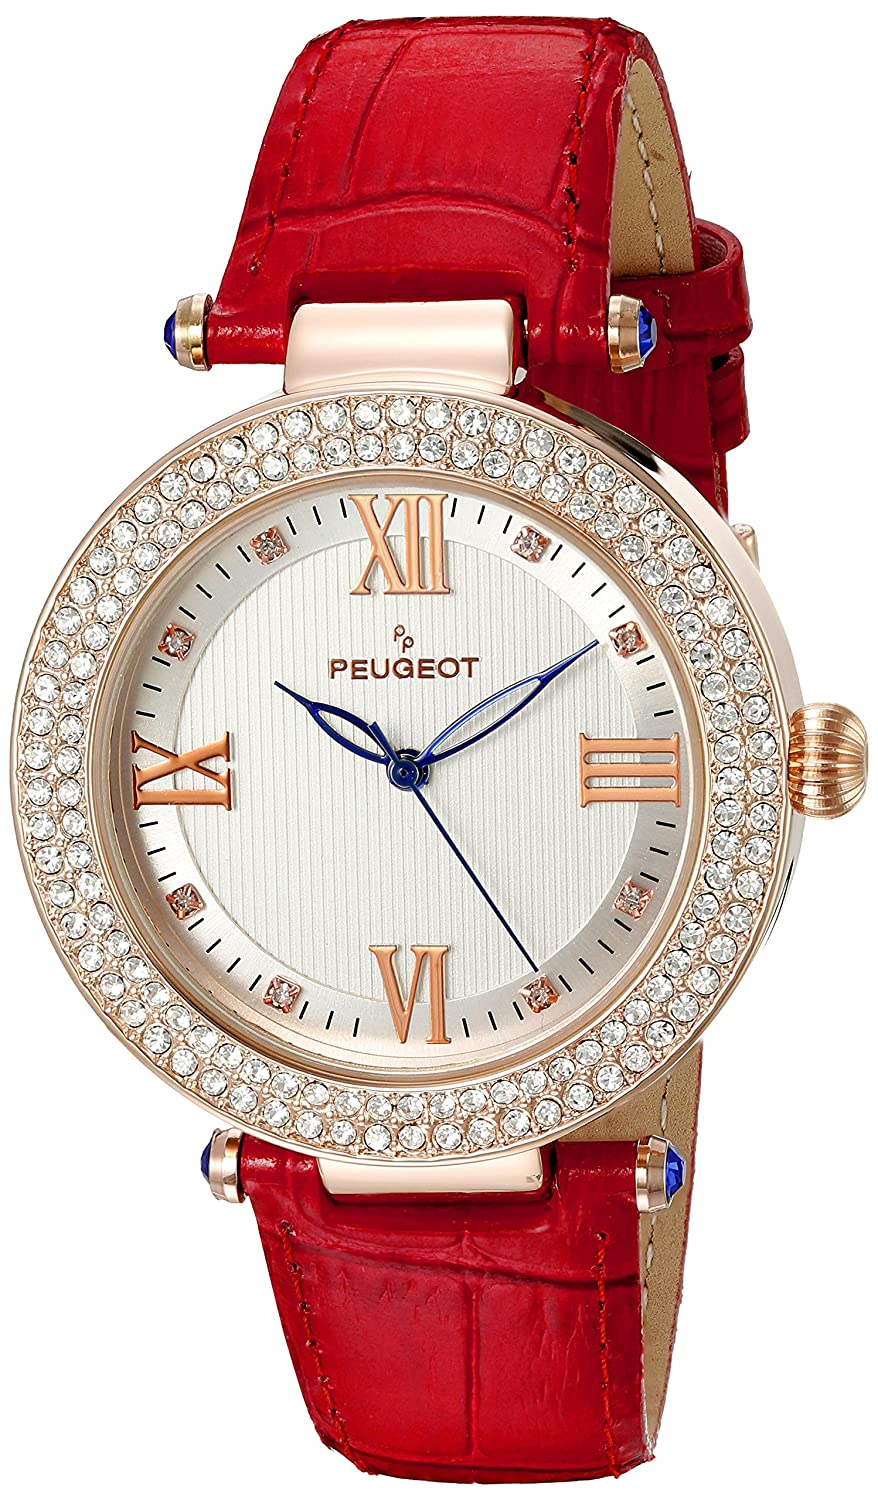 Peugeot Womens Luxury 14k Rose Gold Plated Leather Dress Watch